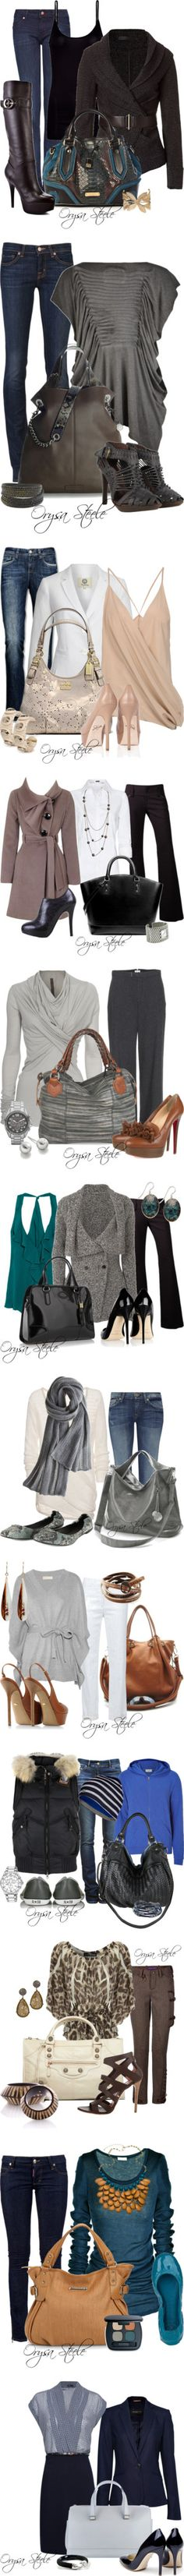 """""""Orysa's Favourites"""" by orysa on Polyvore"""